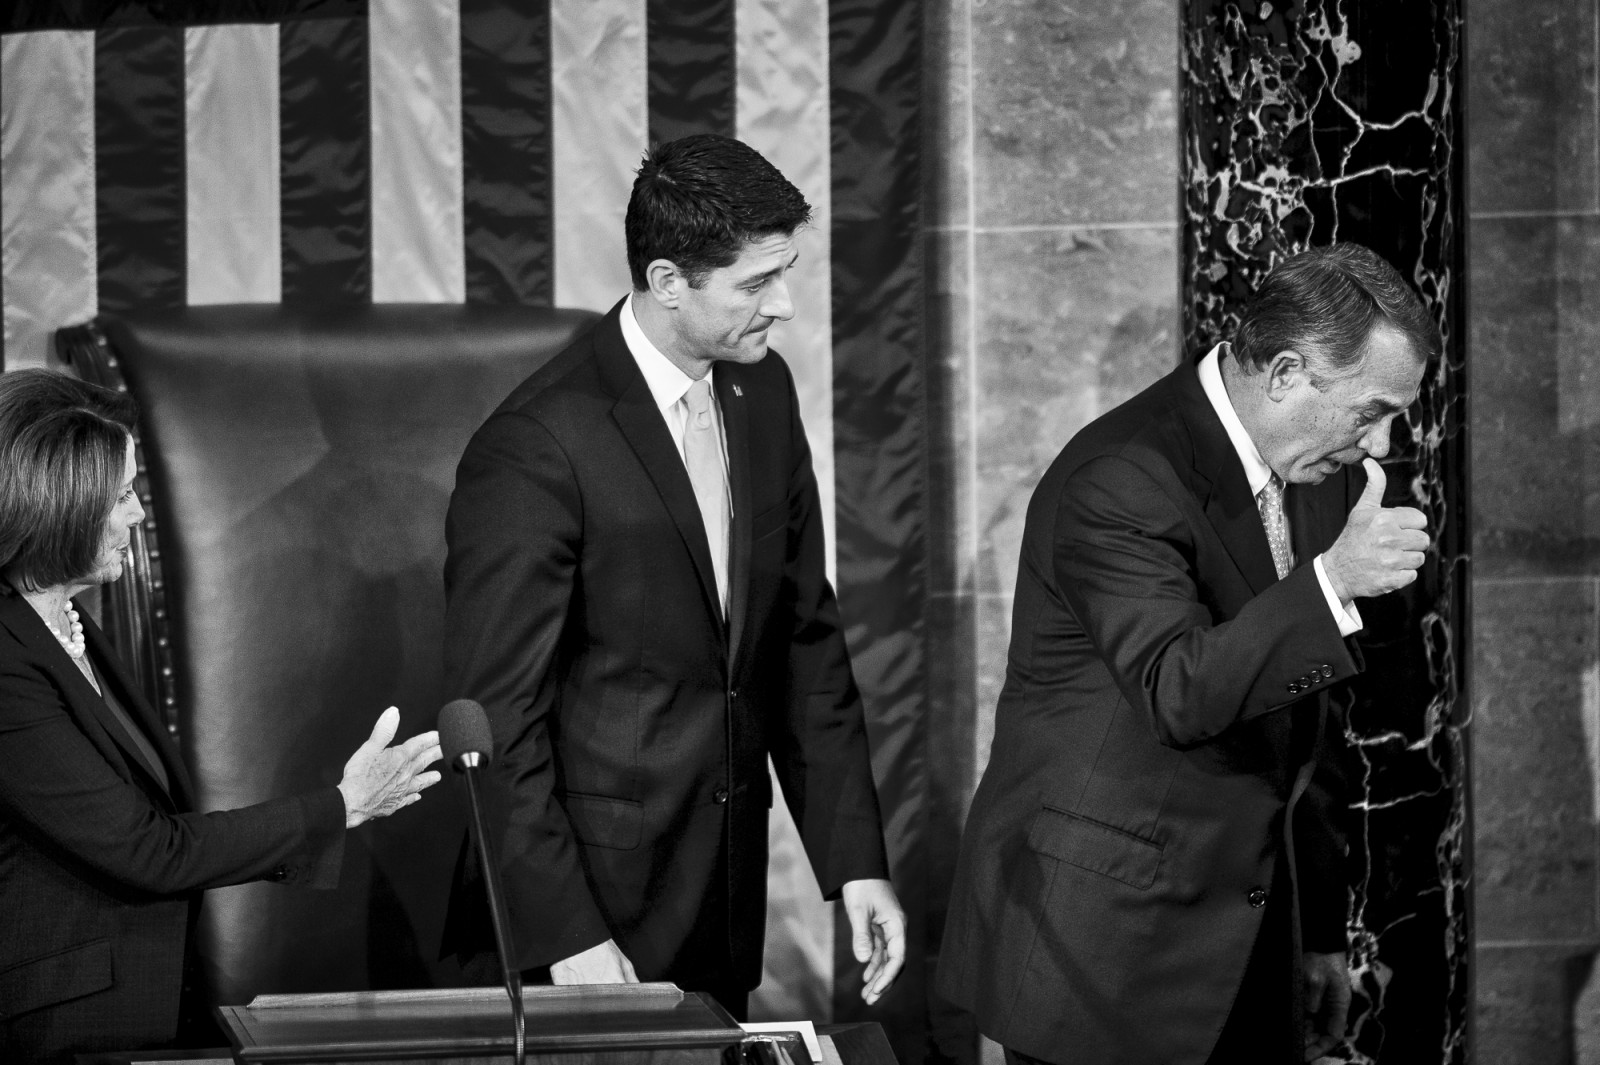 Democratic Minority Leader Nancy Pelosi and Speaker elect Paul Ryan (R-WI) look on as John Boehner (R-OH) leaves the chair for the final time on October 29, 2015 in Washington, D.C. Earlier the outgoing Speaker, Rep. John Boehner (R-OH), gave his farewell address to Congress. He is retiring on October 30, 2015. Photo by Pete Marovich/UPI